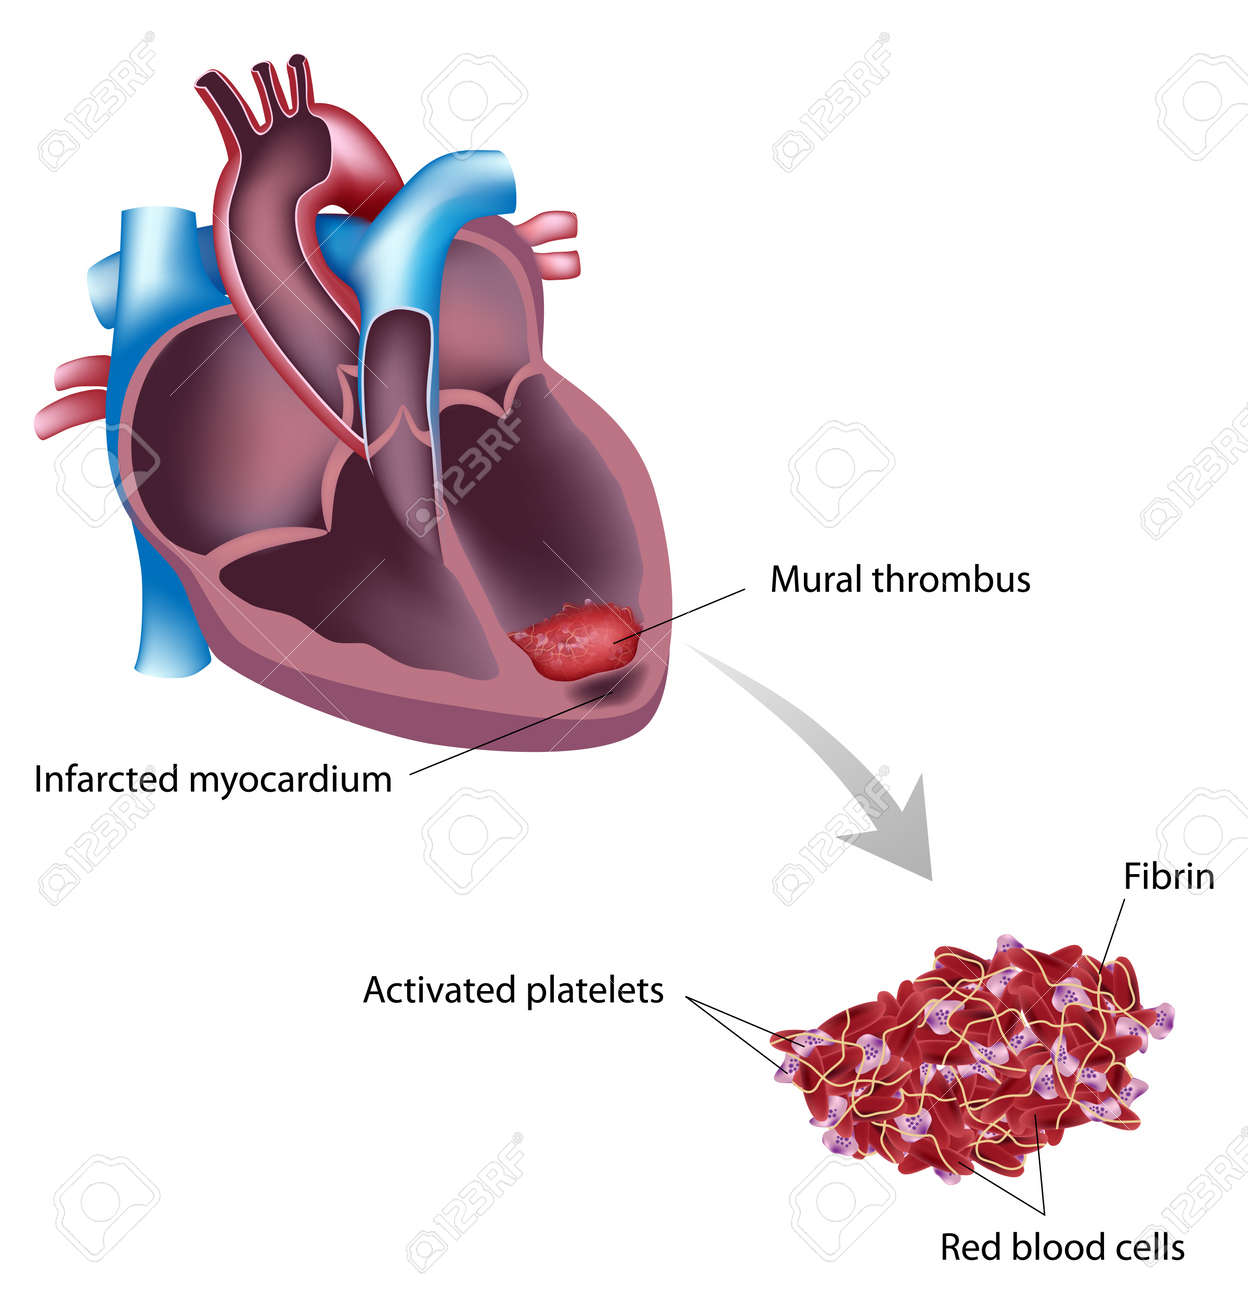 mural thrombus after heart attack royalty free cliparts, vectors, Muscles